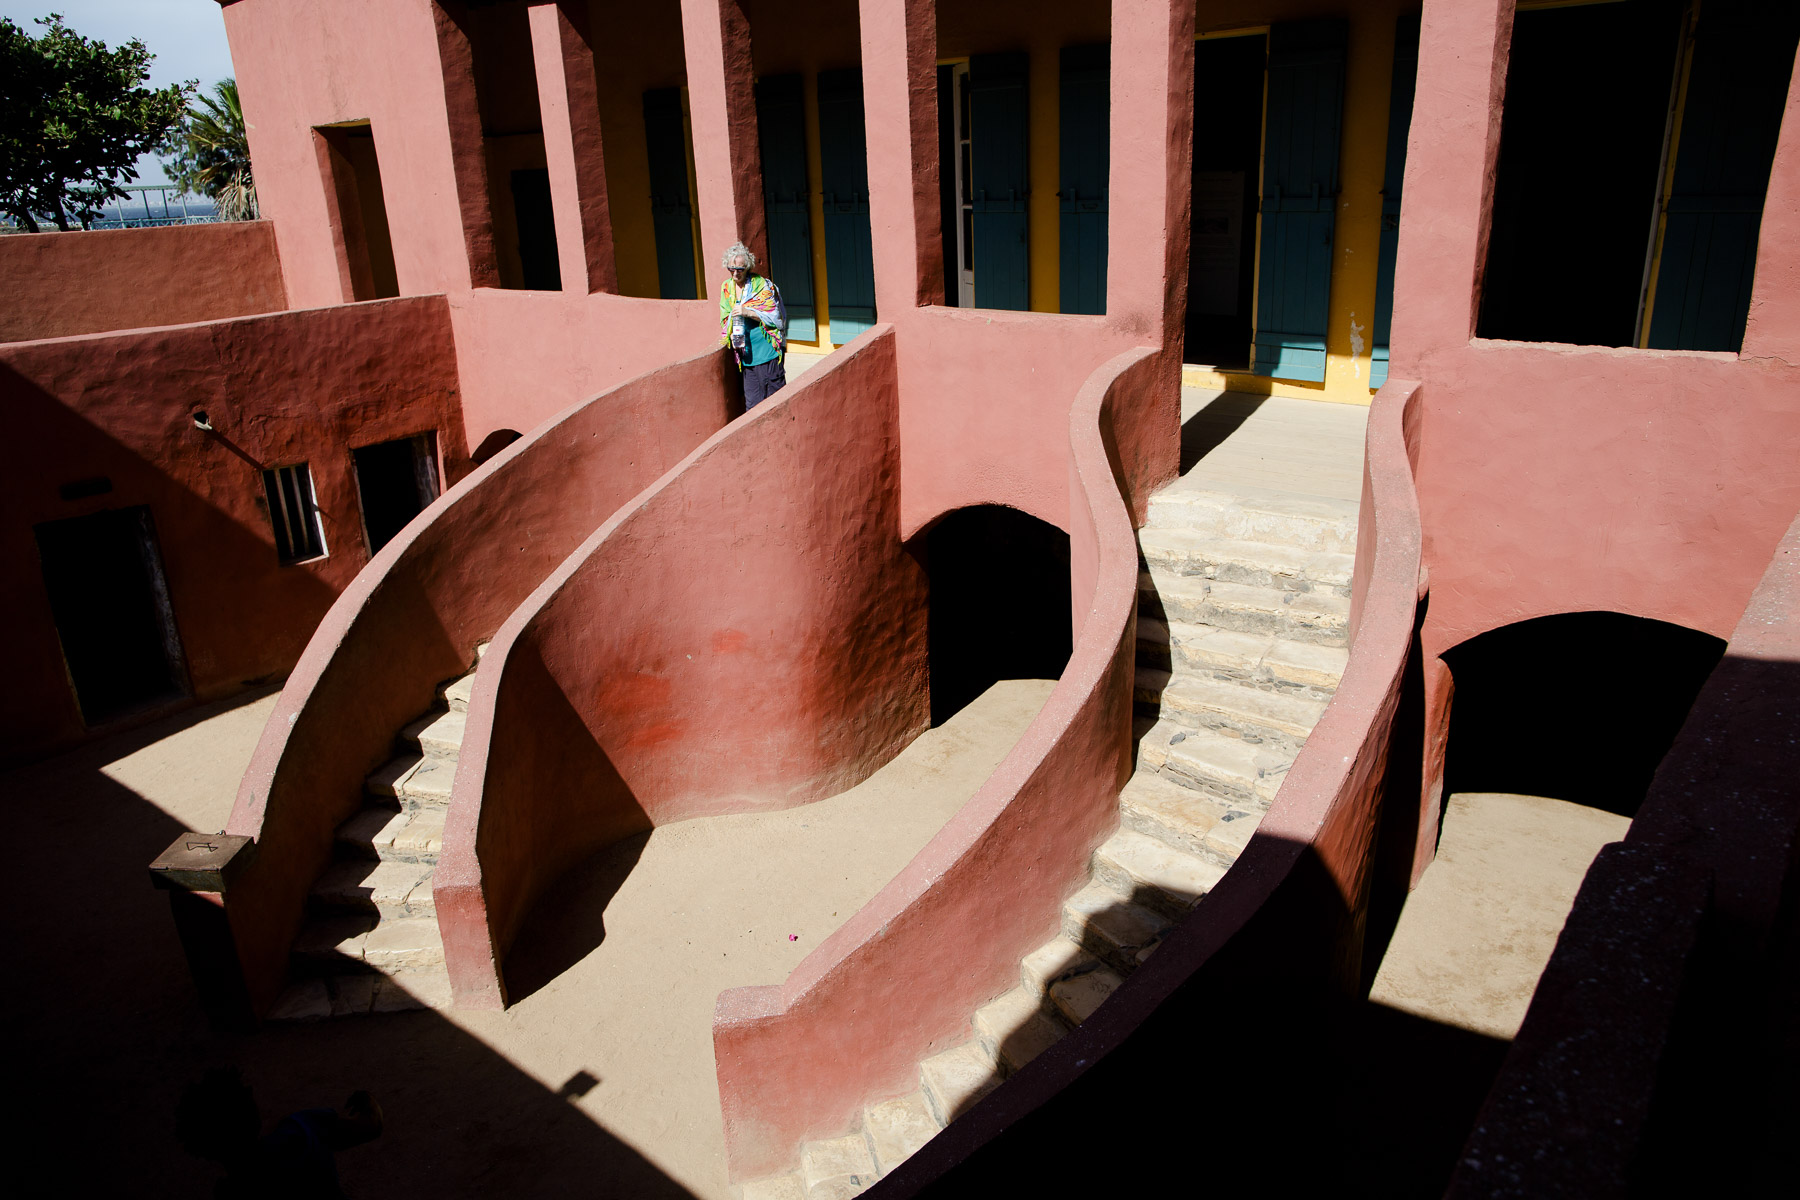 House of slaves, Goree Island, Dakar